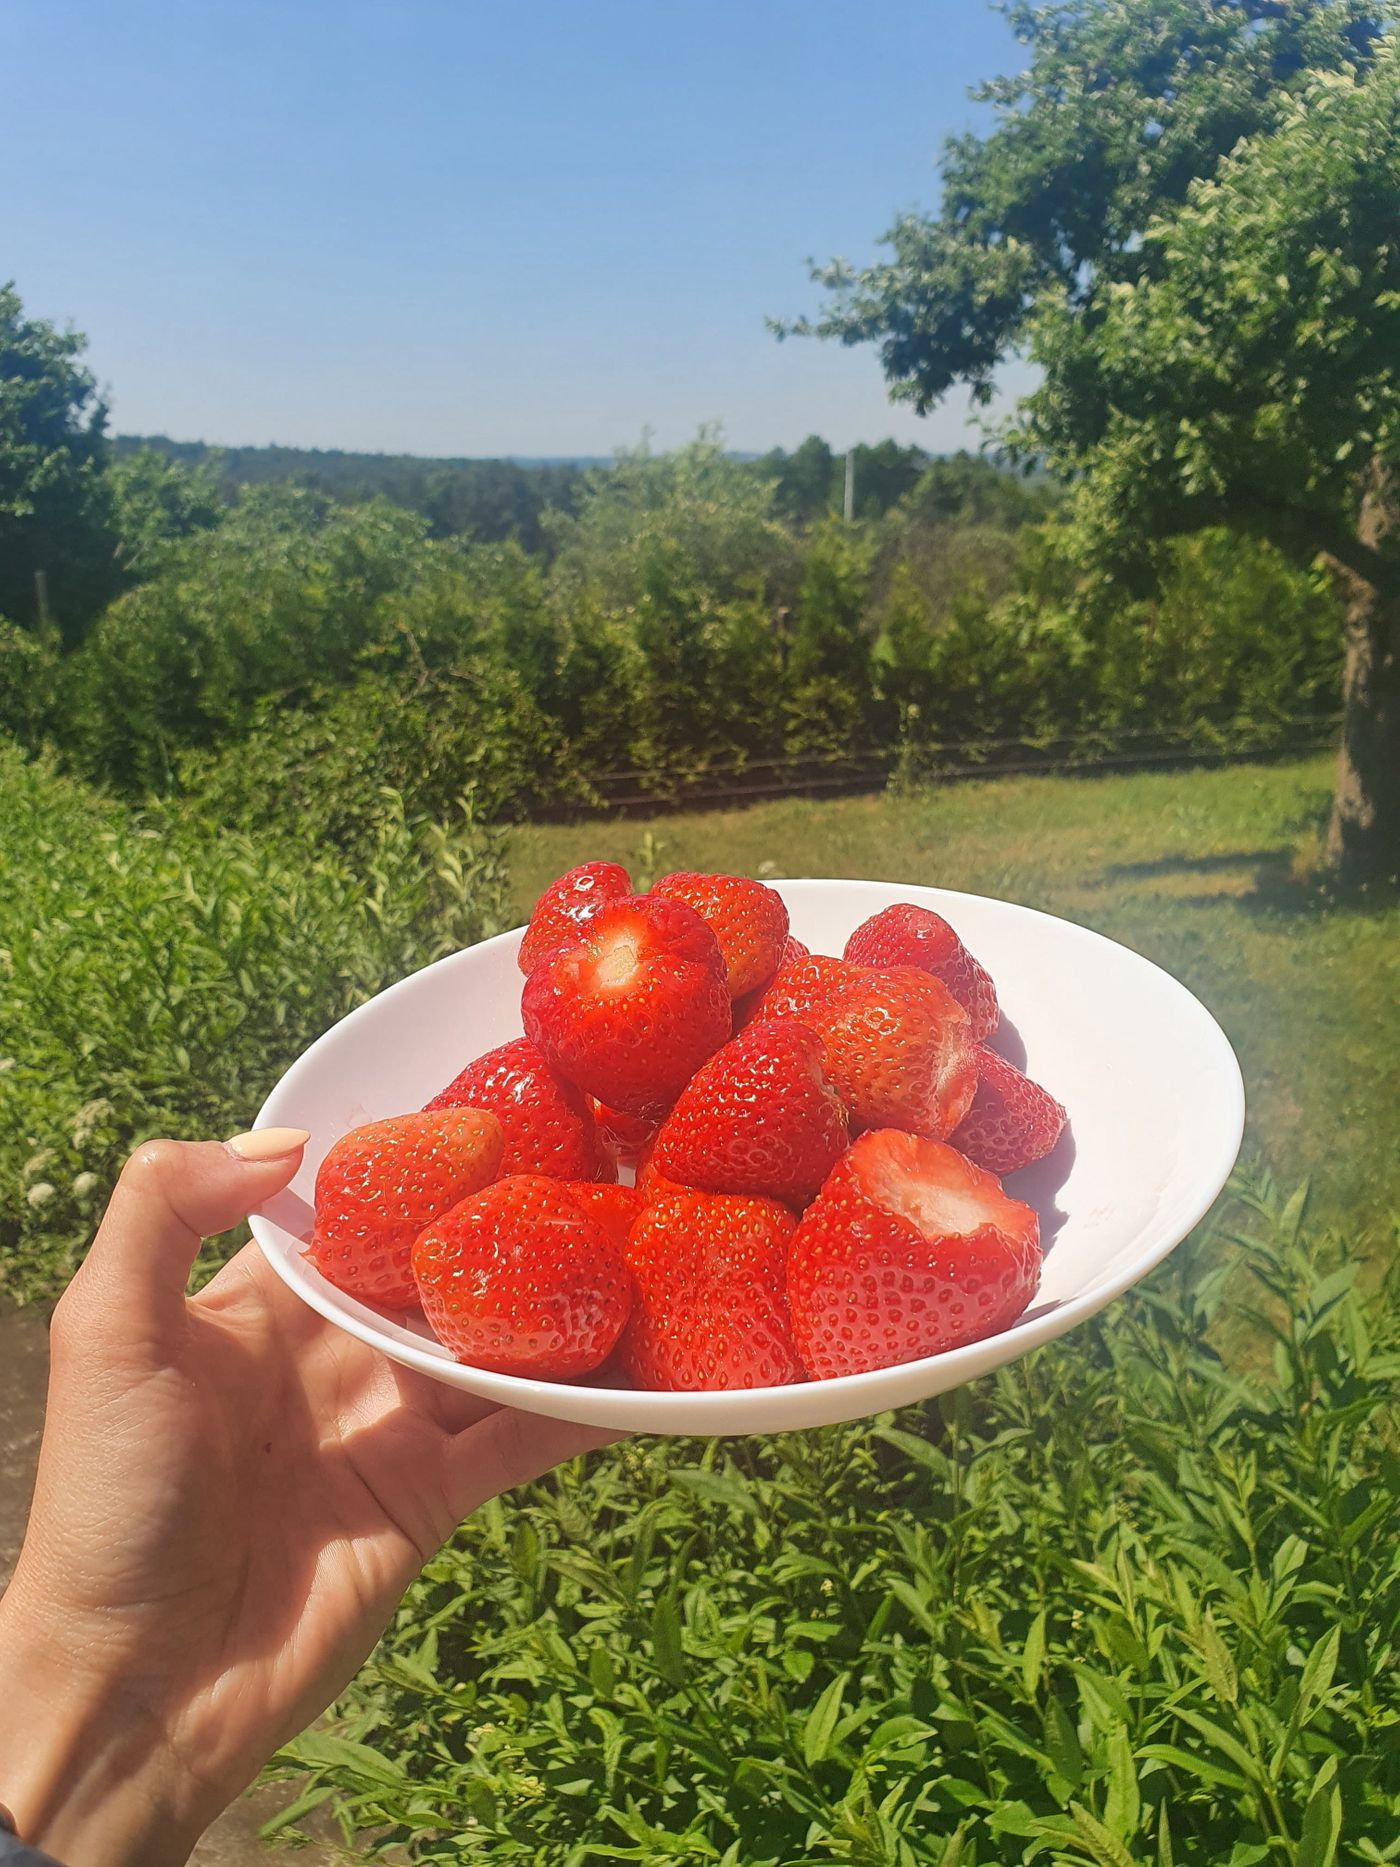 Happy Sunday! What's your favourite fruit? I love all berries - low in sugar, high in antioxidants and fiber 😋 yummm